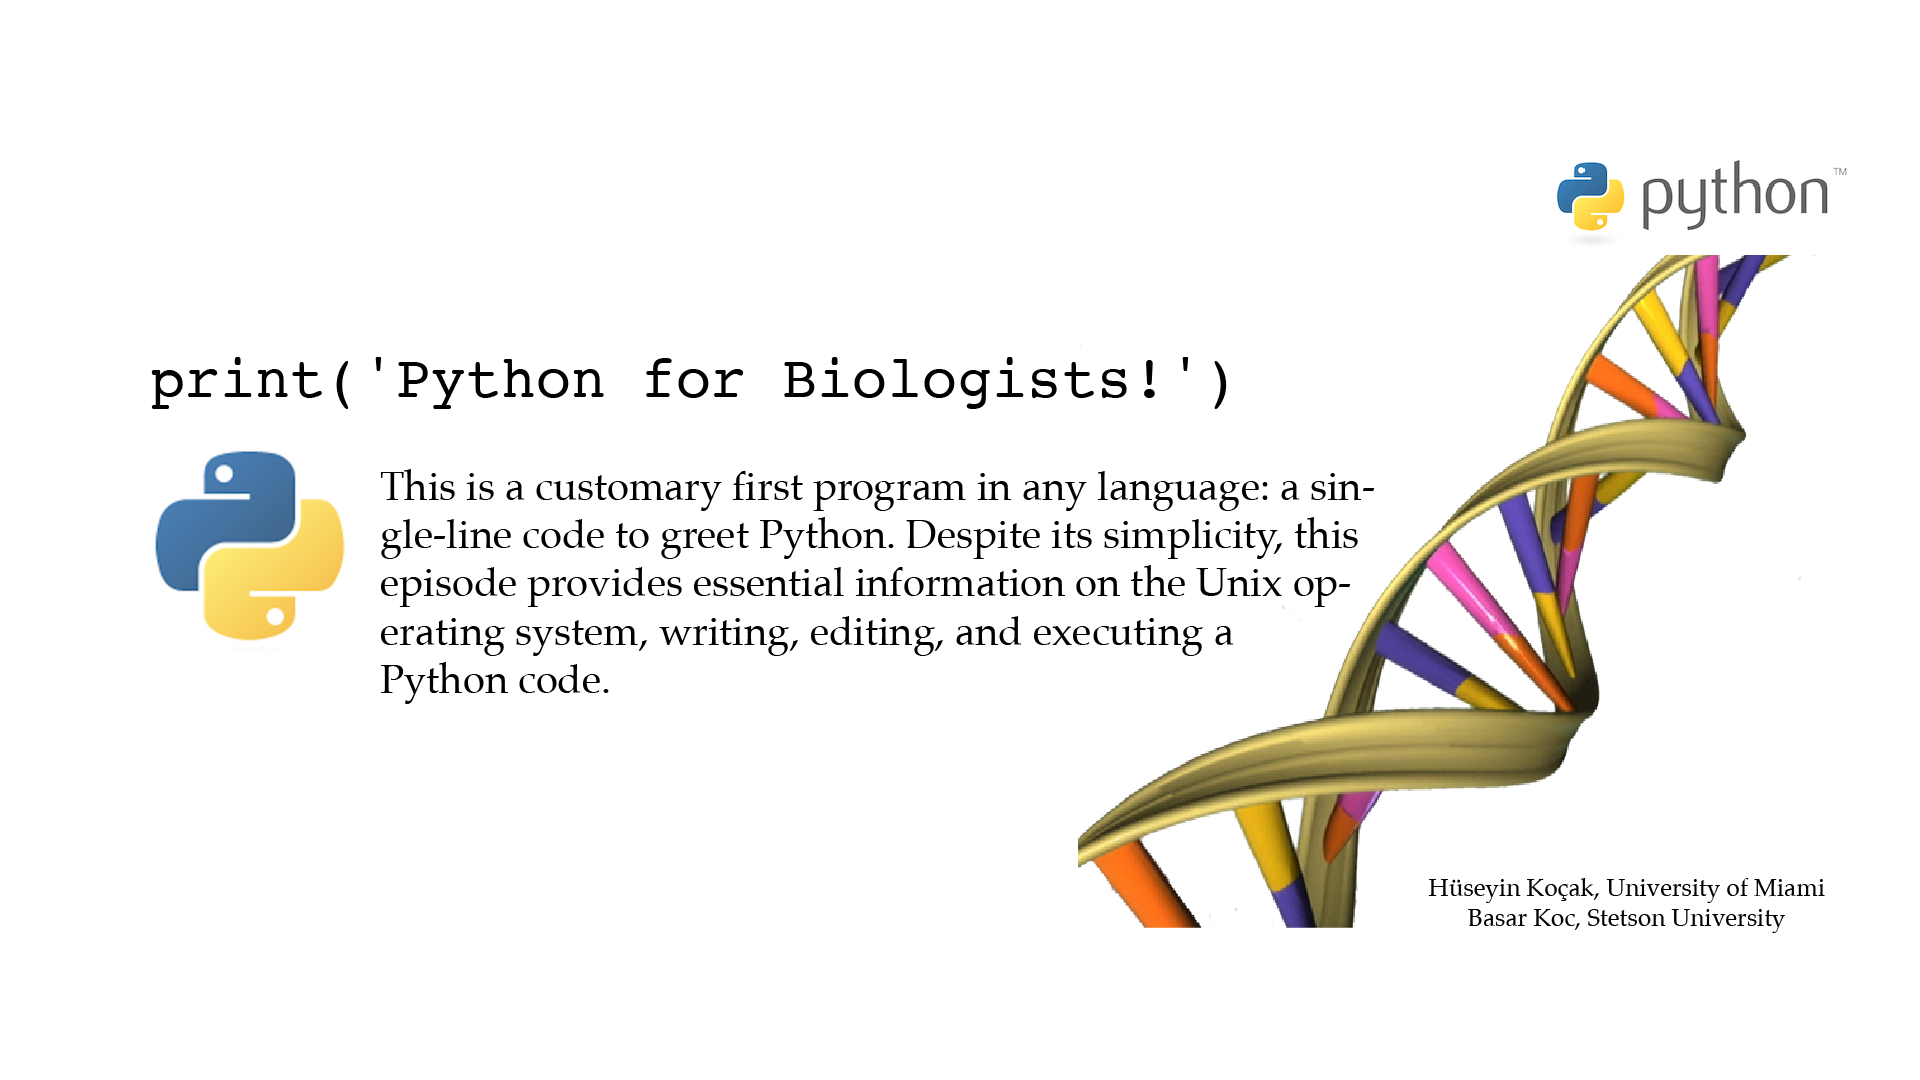 Python for Biologists